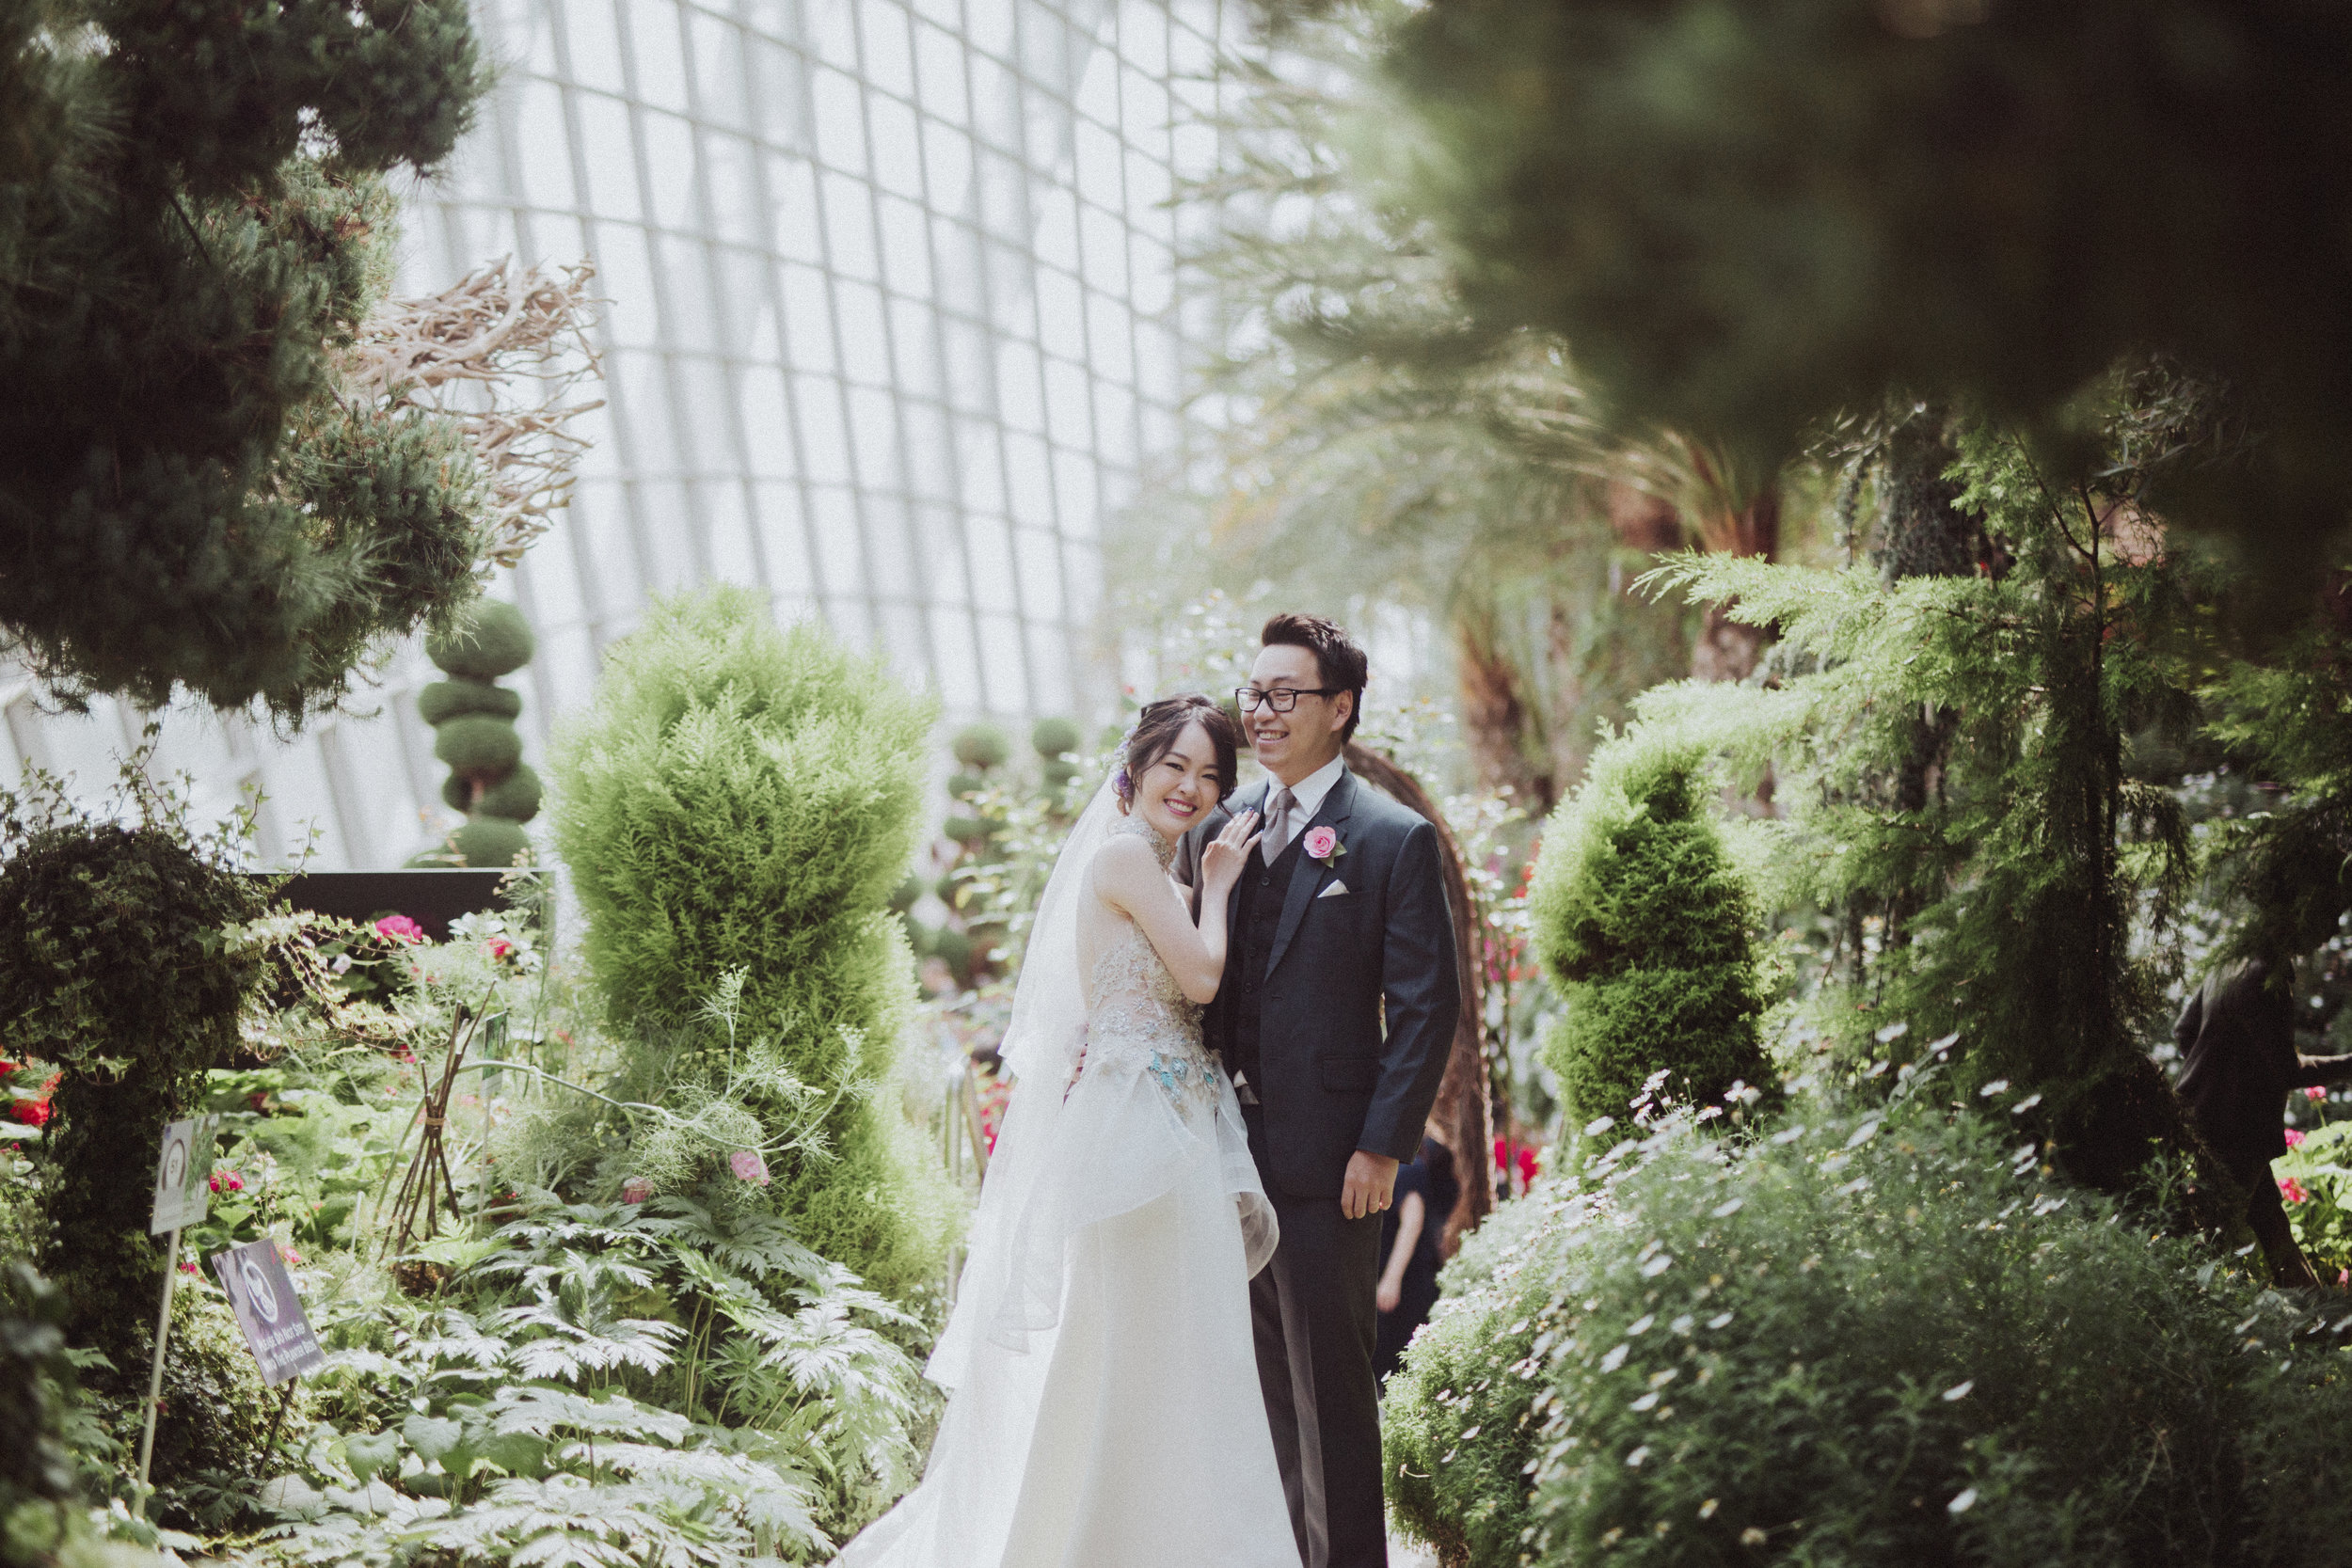 Jasmine + Julian's Wedding Day  (photographed by AndroidsinBoots)